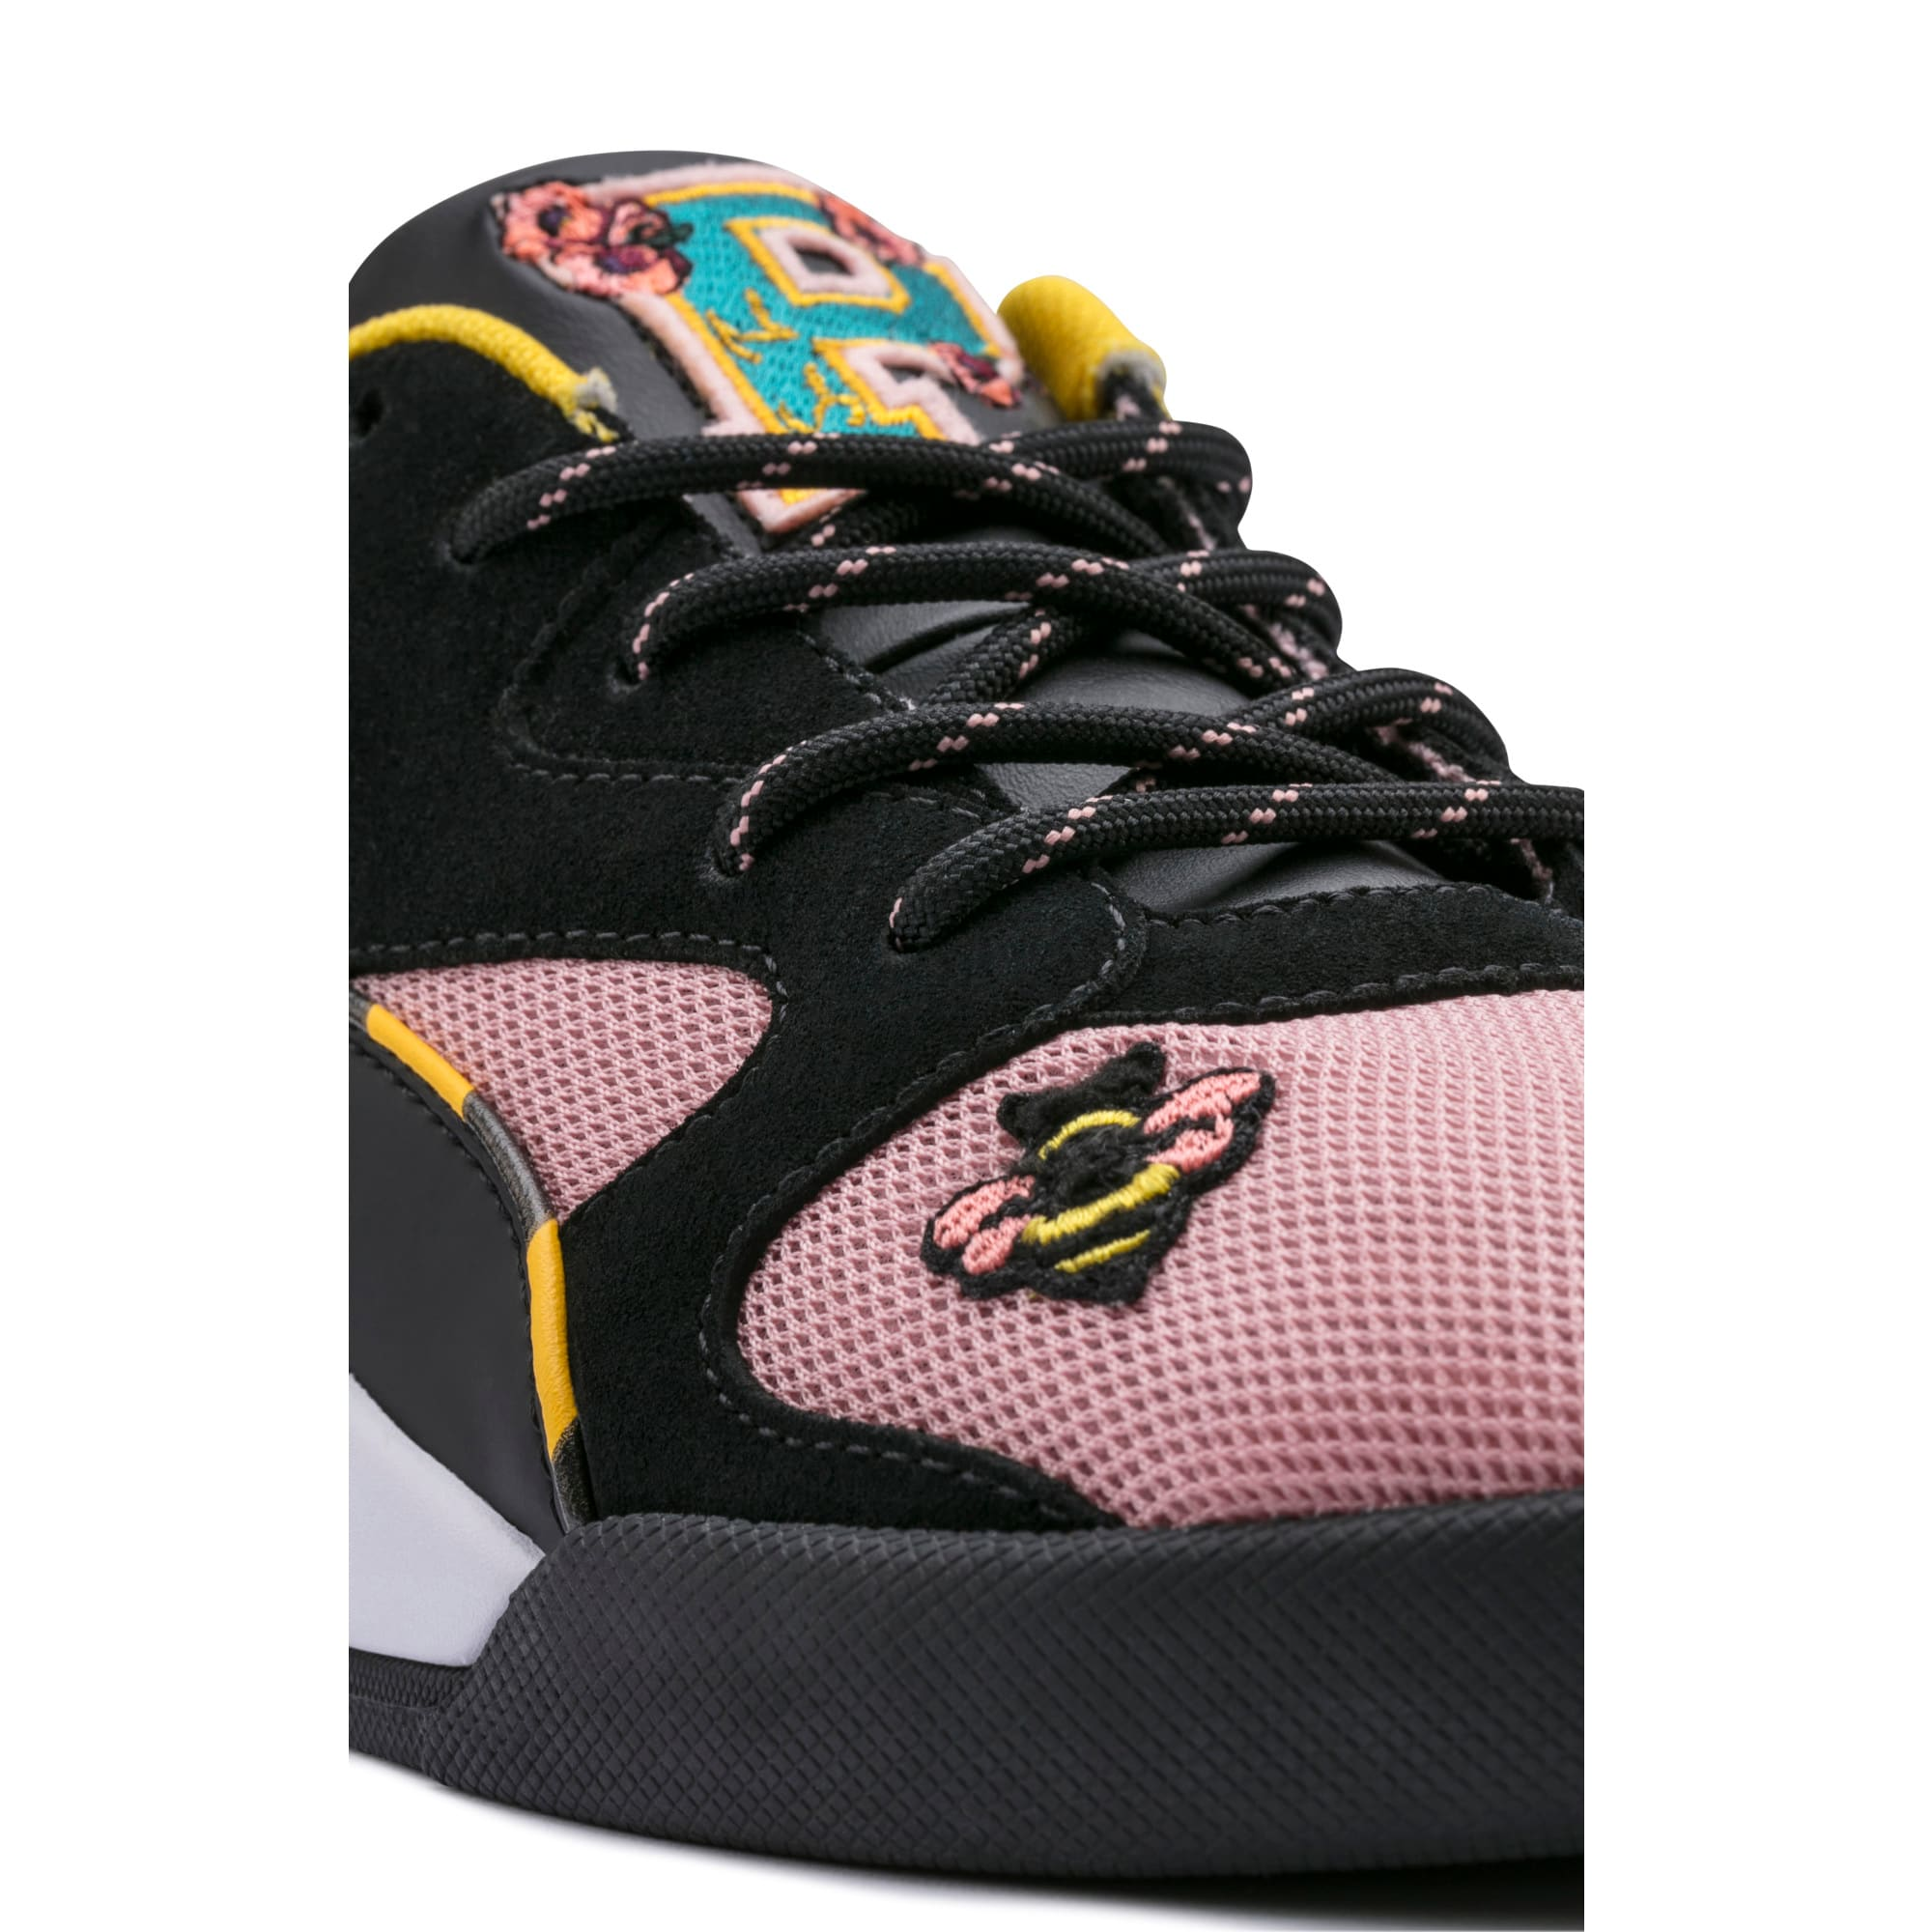 Thumbnail 7 of PUMA x SUE TSAI Aeon Women's Sneakers, Bridal Rose-Puma Black, medium